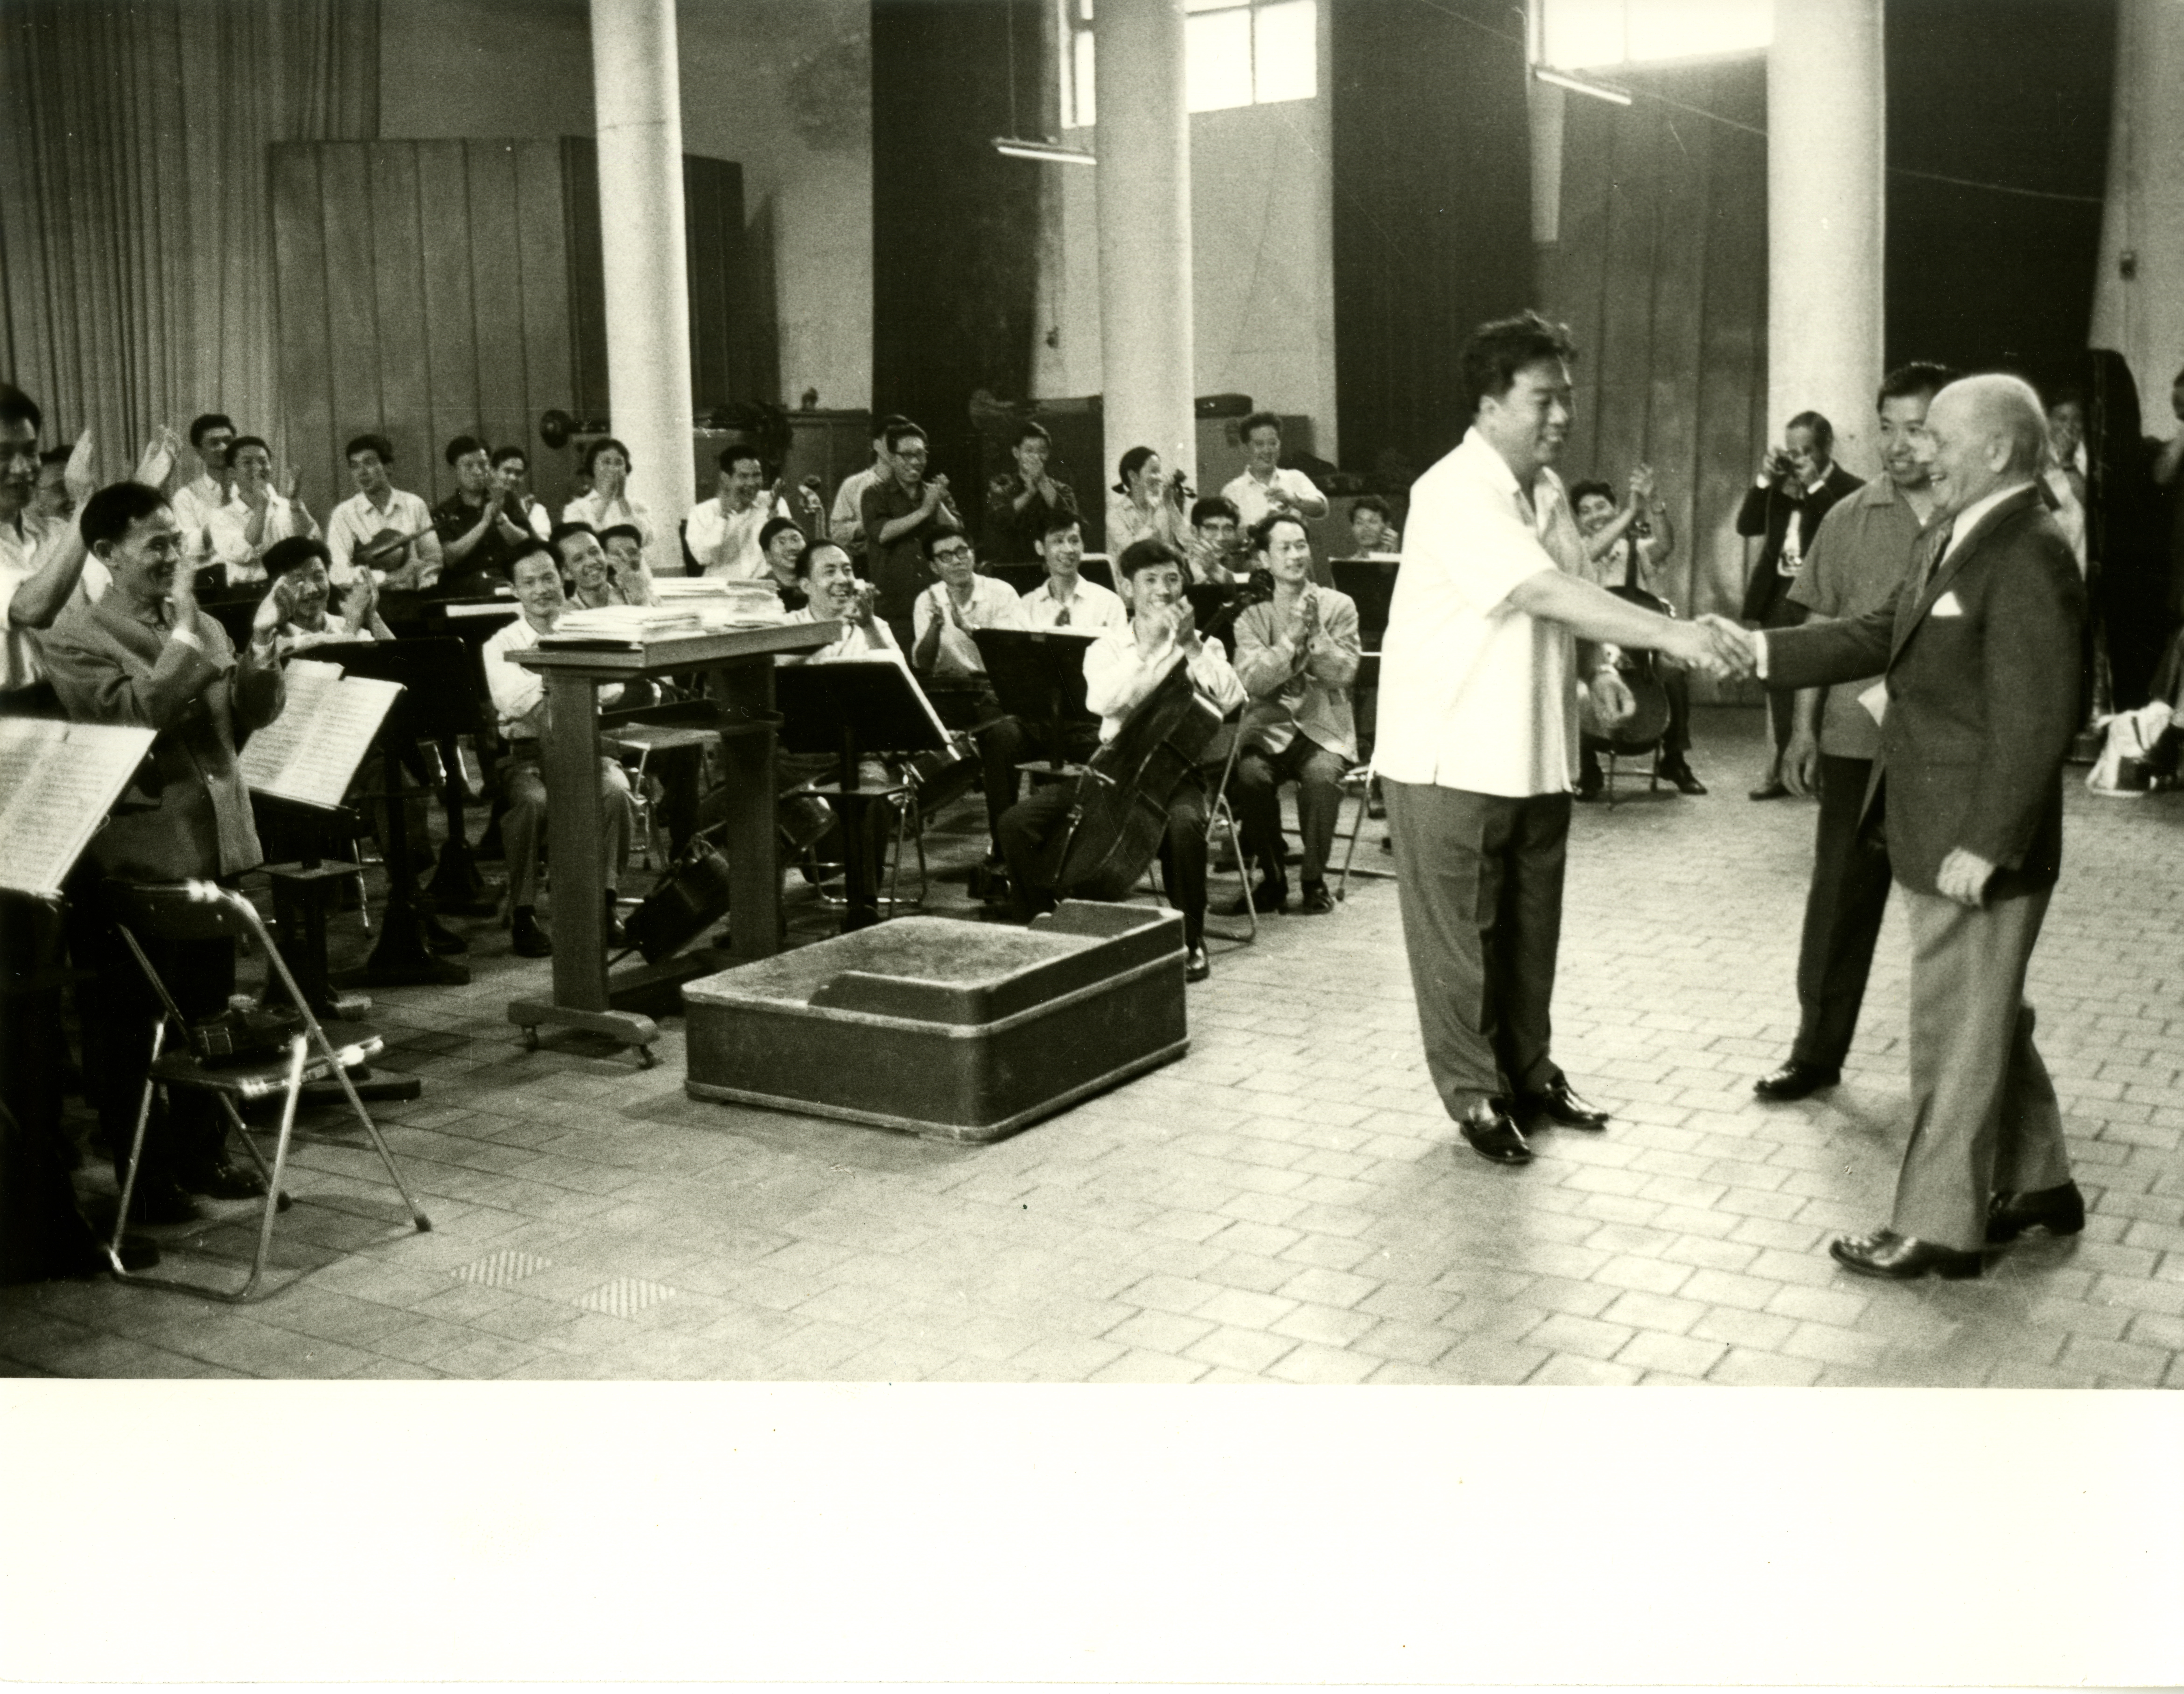 Li Delun and the Central Philharmonic Society welcoming Eugene Ormandy